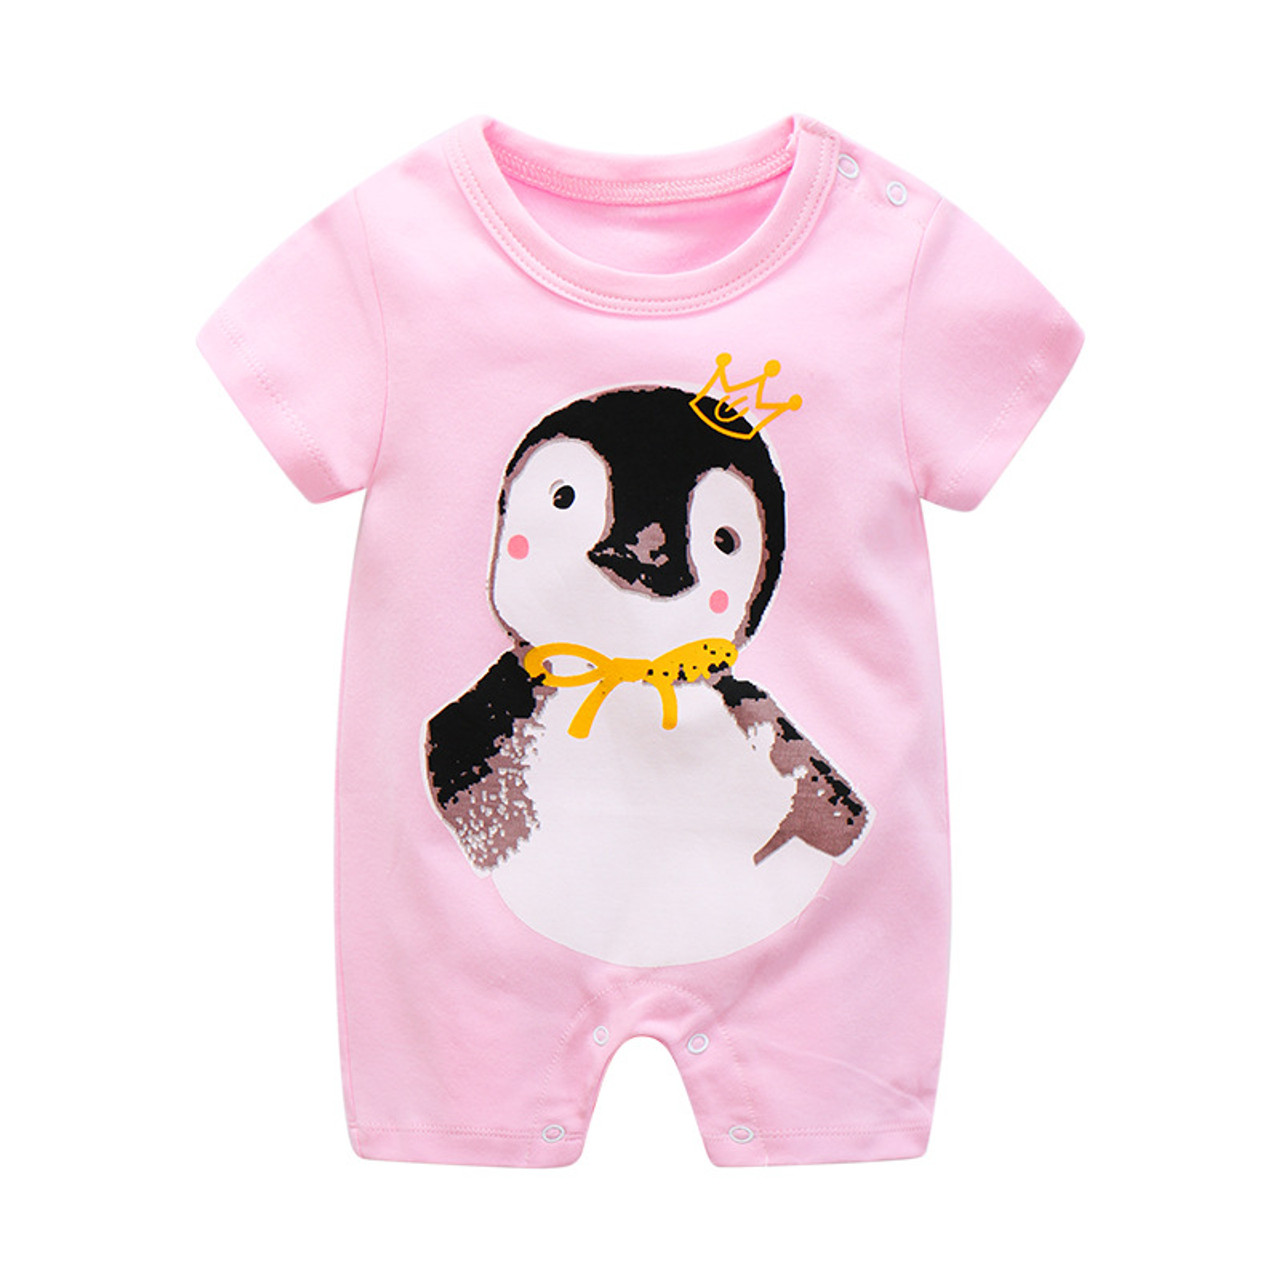 9ef90dfd2fb9 ... Summer Newborn Baby Jumpsuit Infant Crawling Short Sleeve Cotton Rompers  Baby Pajamas Cartoon Animal Clothes For ...